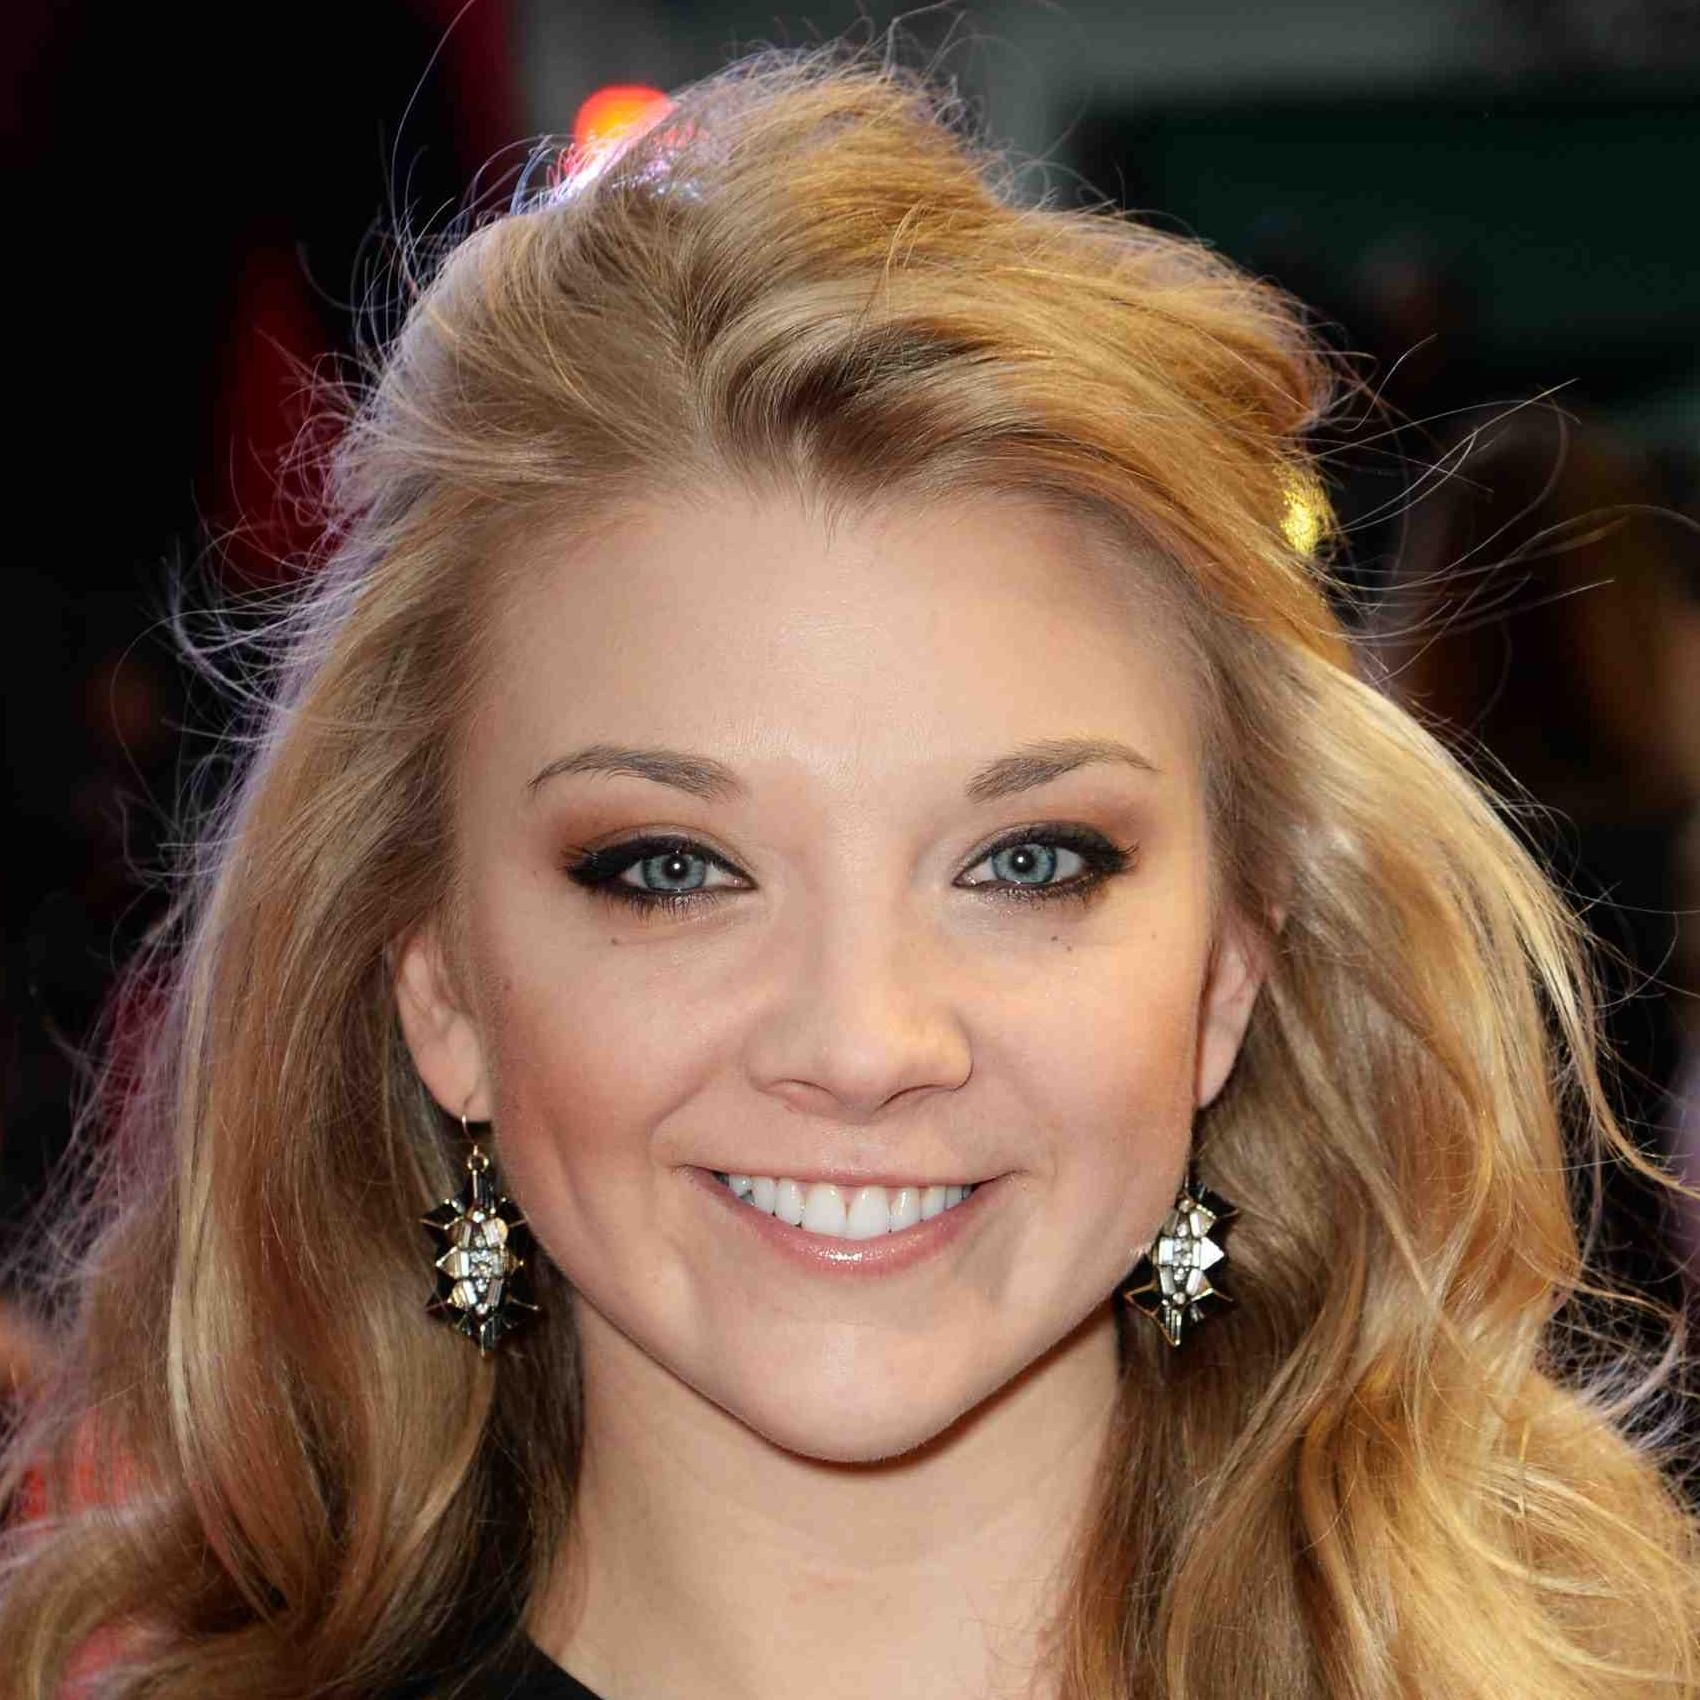 Natalie Dormer | Beautiful Faces | Pinterest: http://pinterest.com/pin/326792516682737454